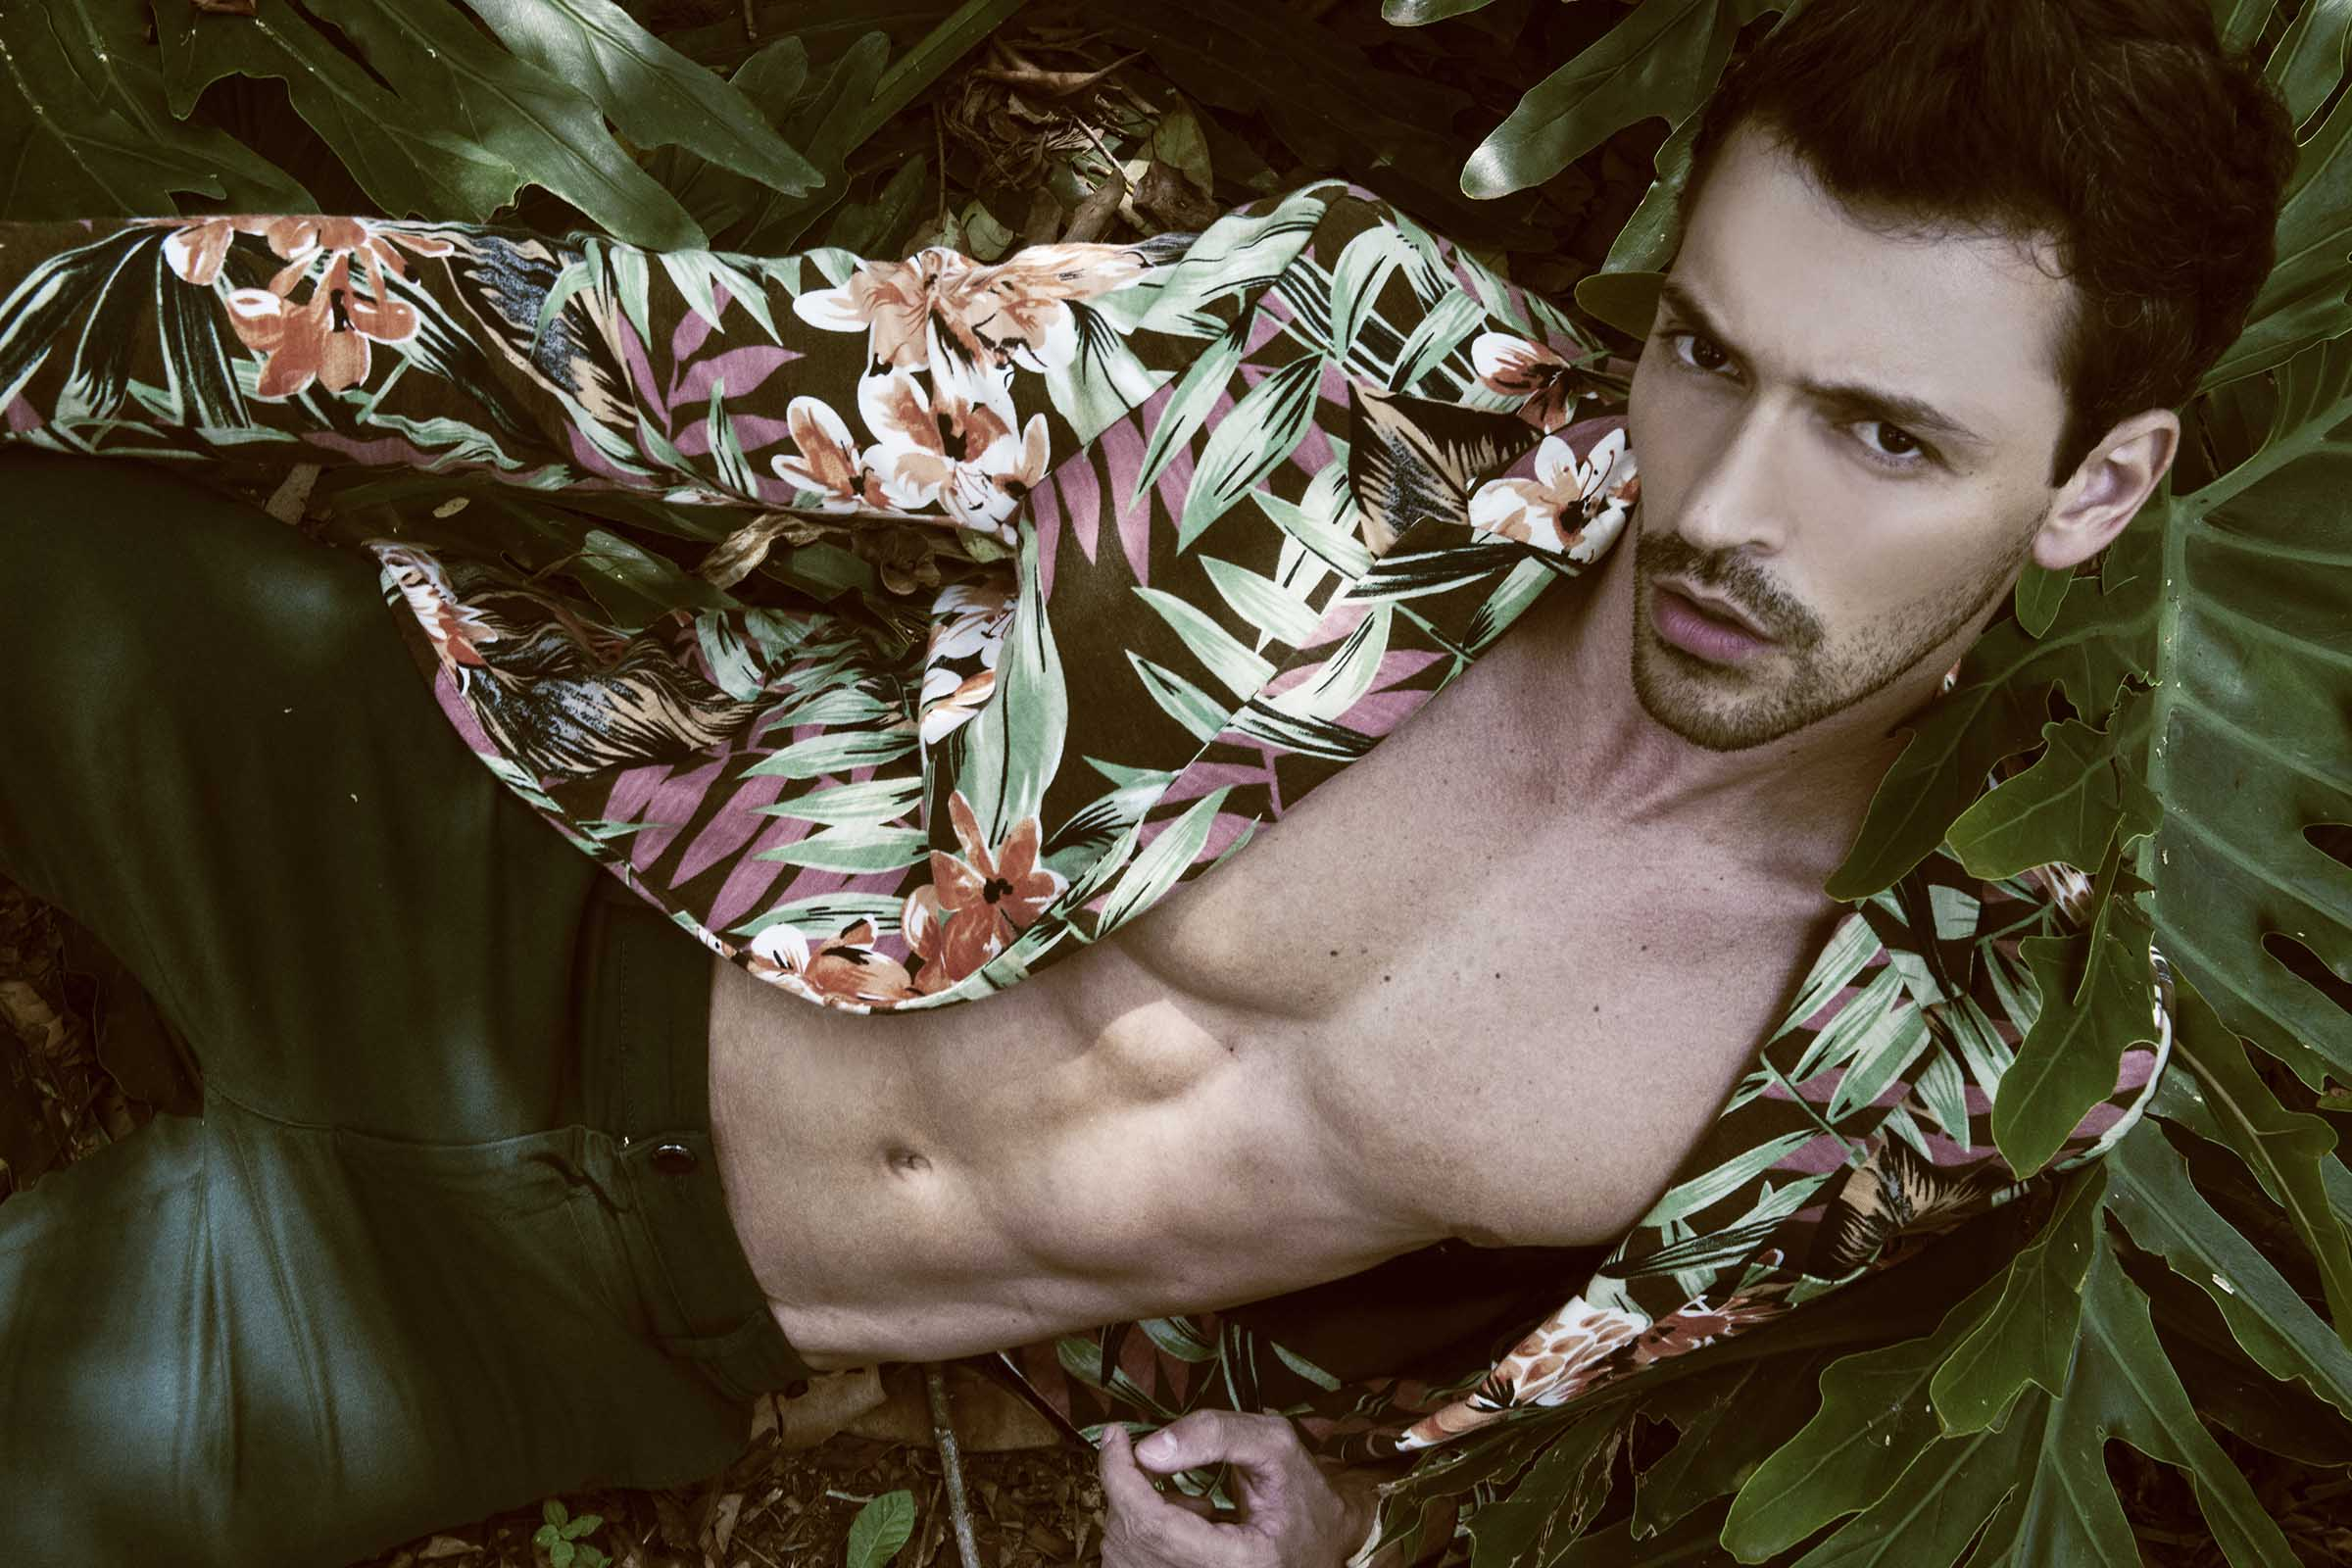 Nicholas Pietro by Rodrigo Marconatto for Brazilian Male Model